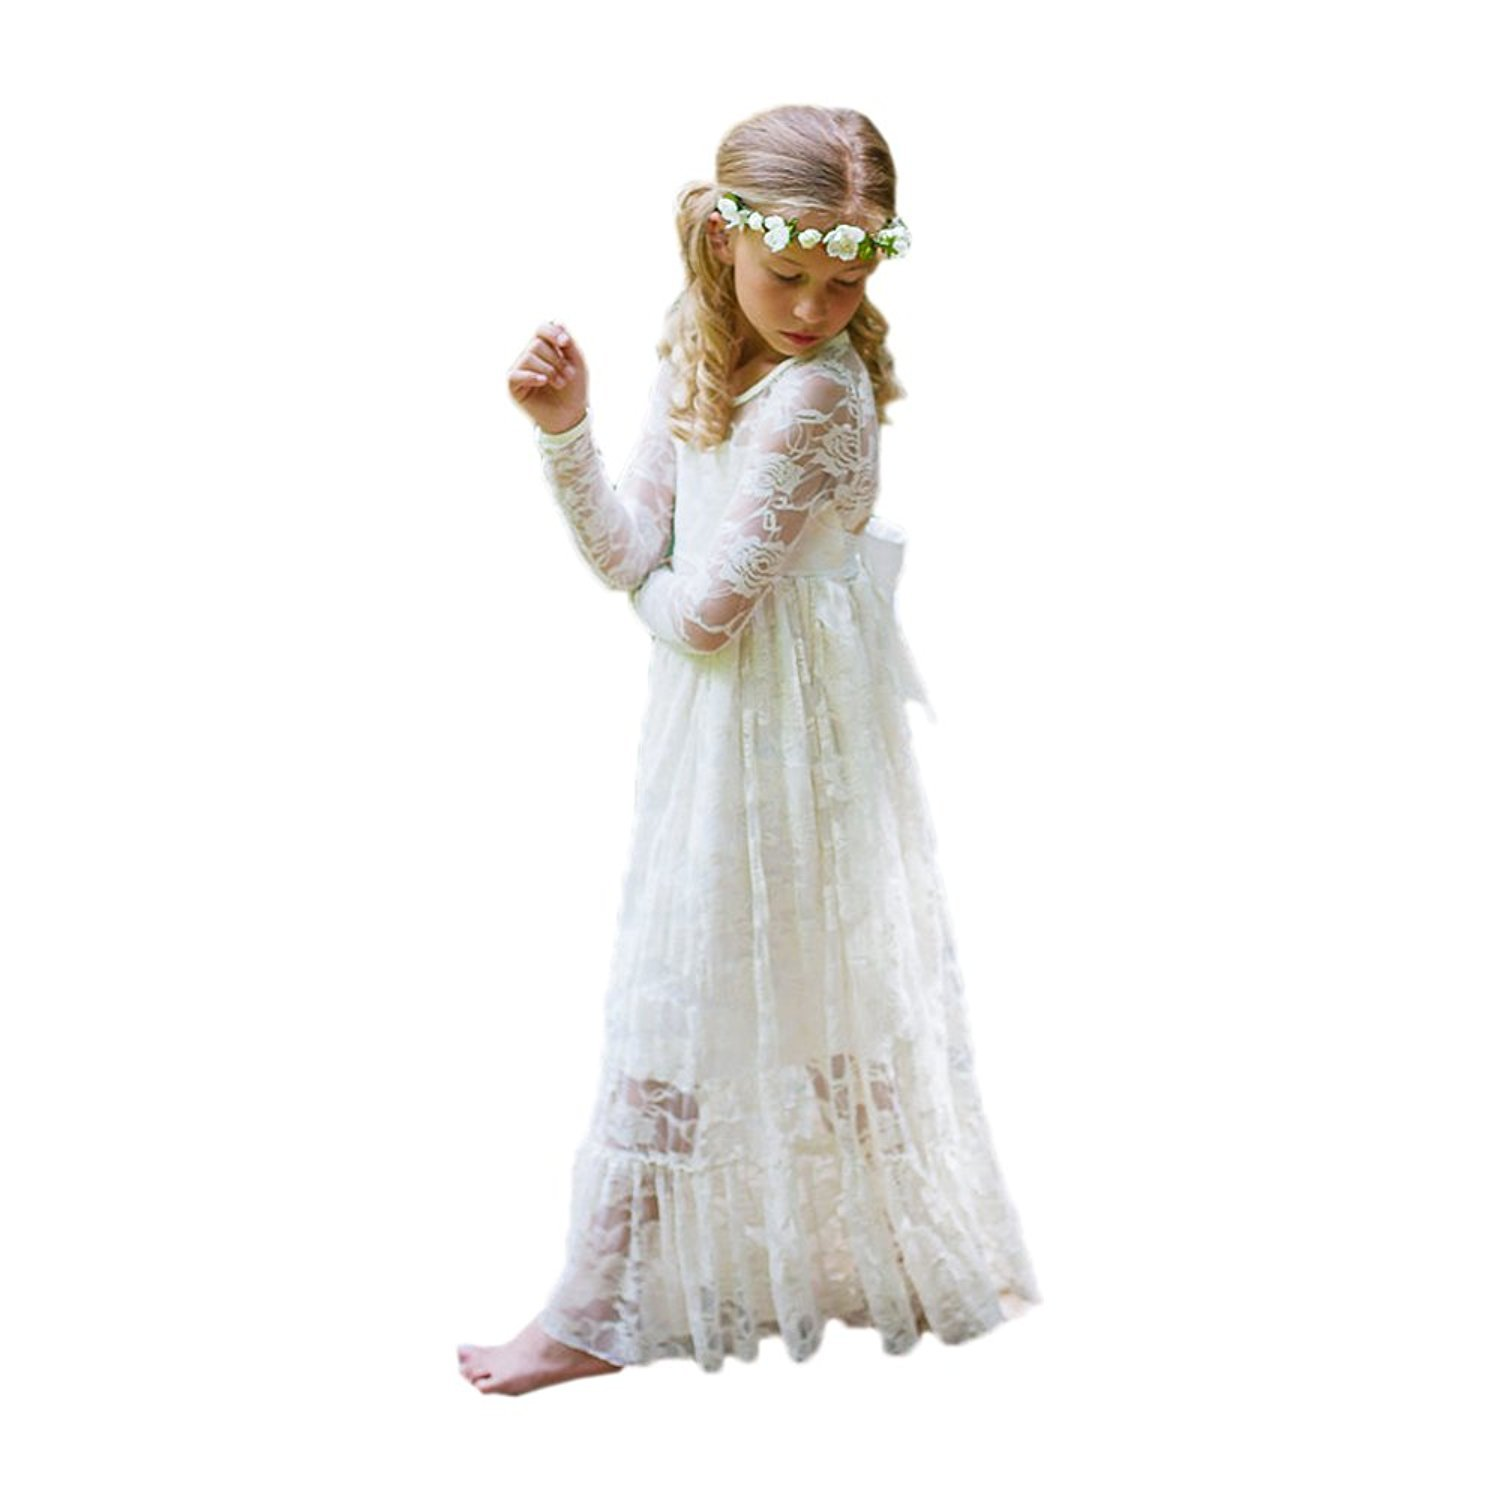 Girls special occasion dresses amazon fancy ivory white lace boho rustic flower girl dress 2 12 year old ombrellifo Images